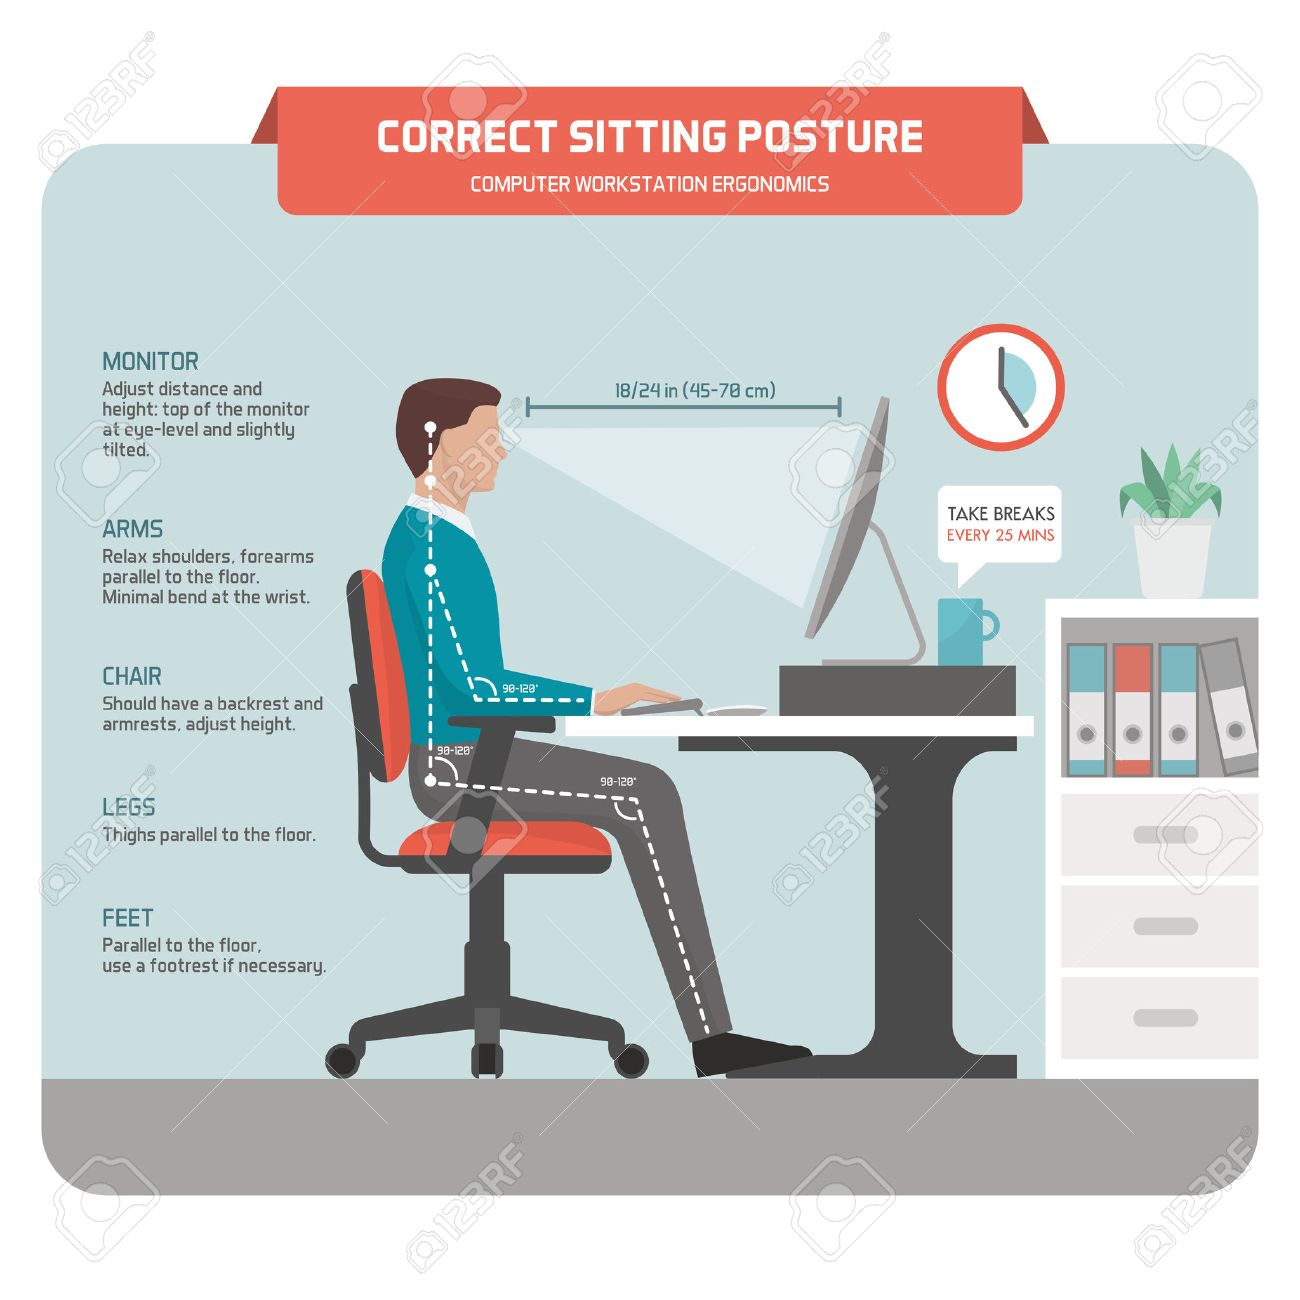 Correct sitting at desk posture ergonomics: office worker using a computer and improving his posture - 75835715